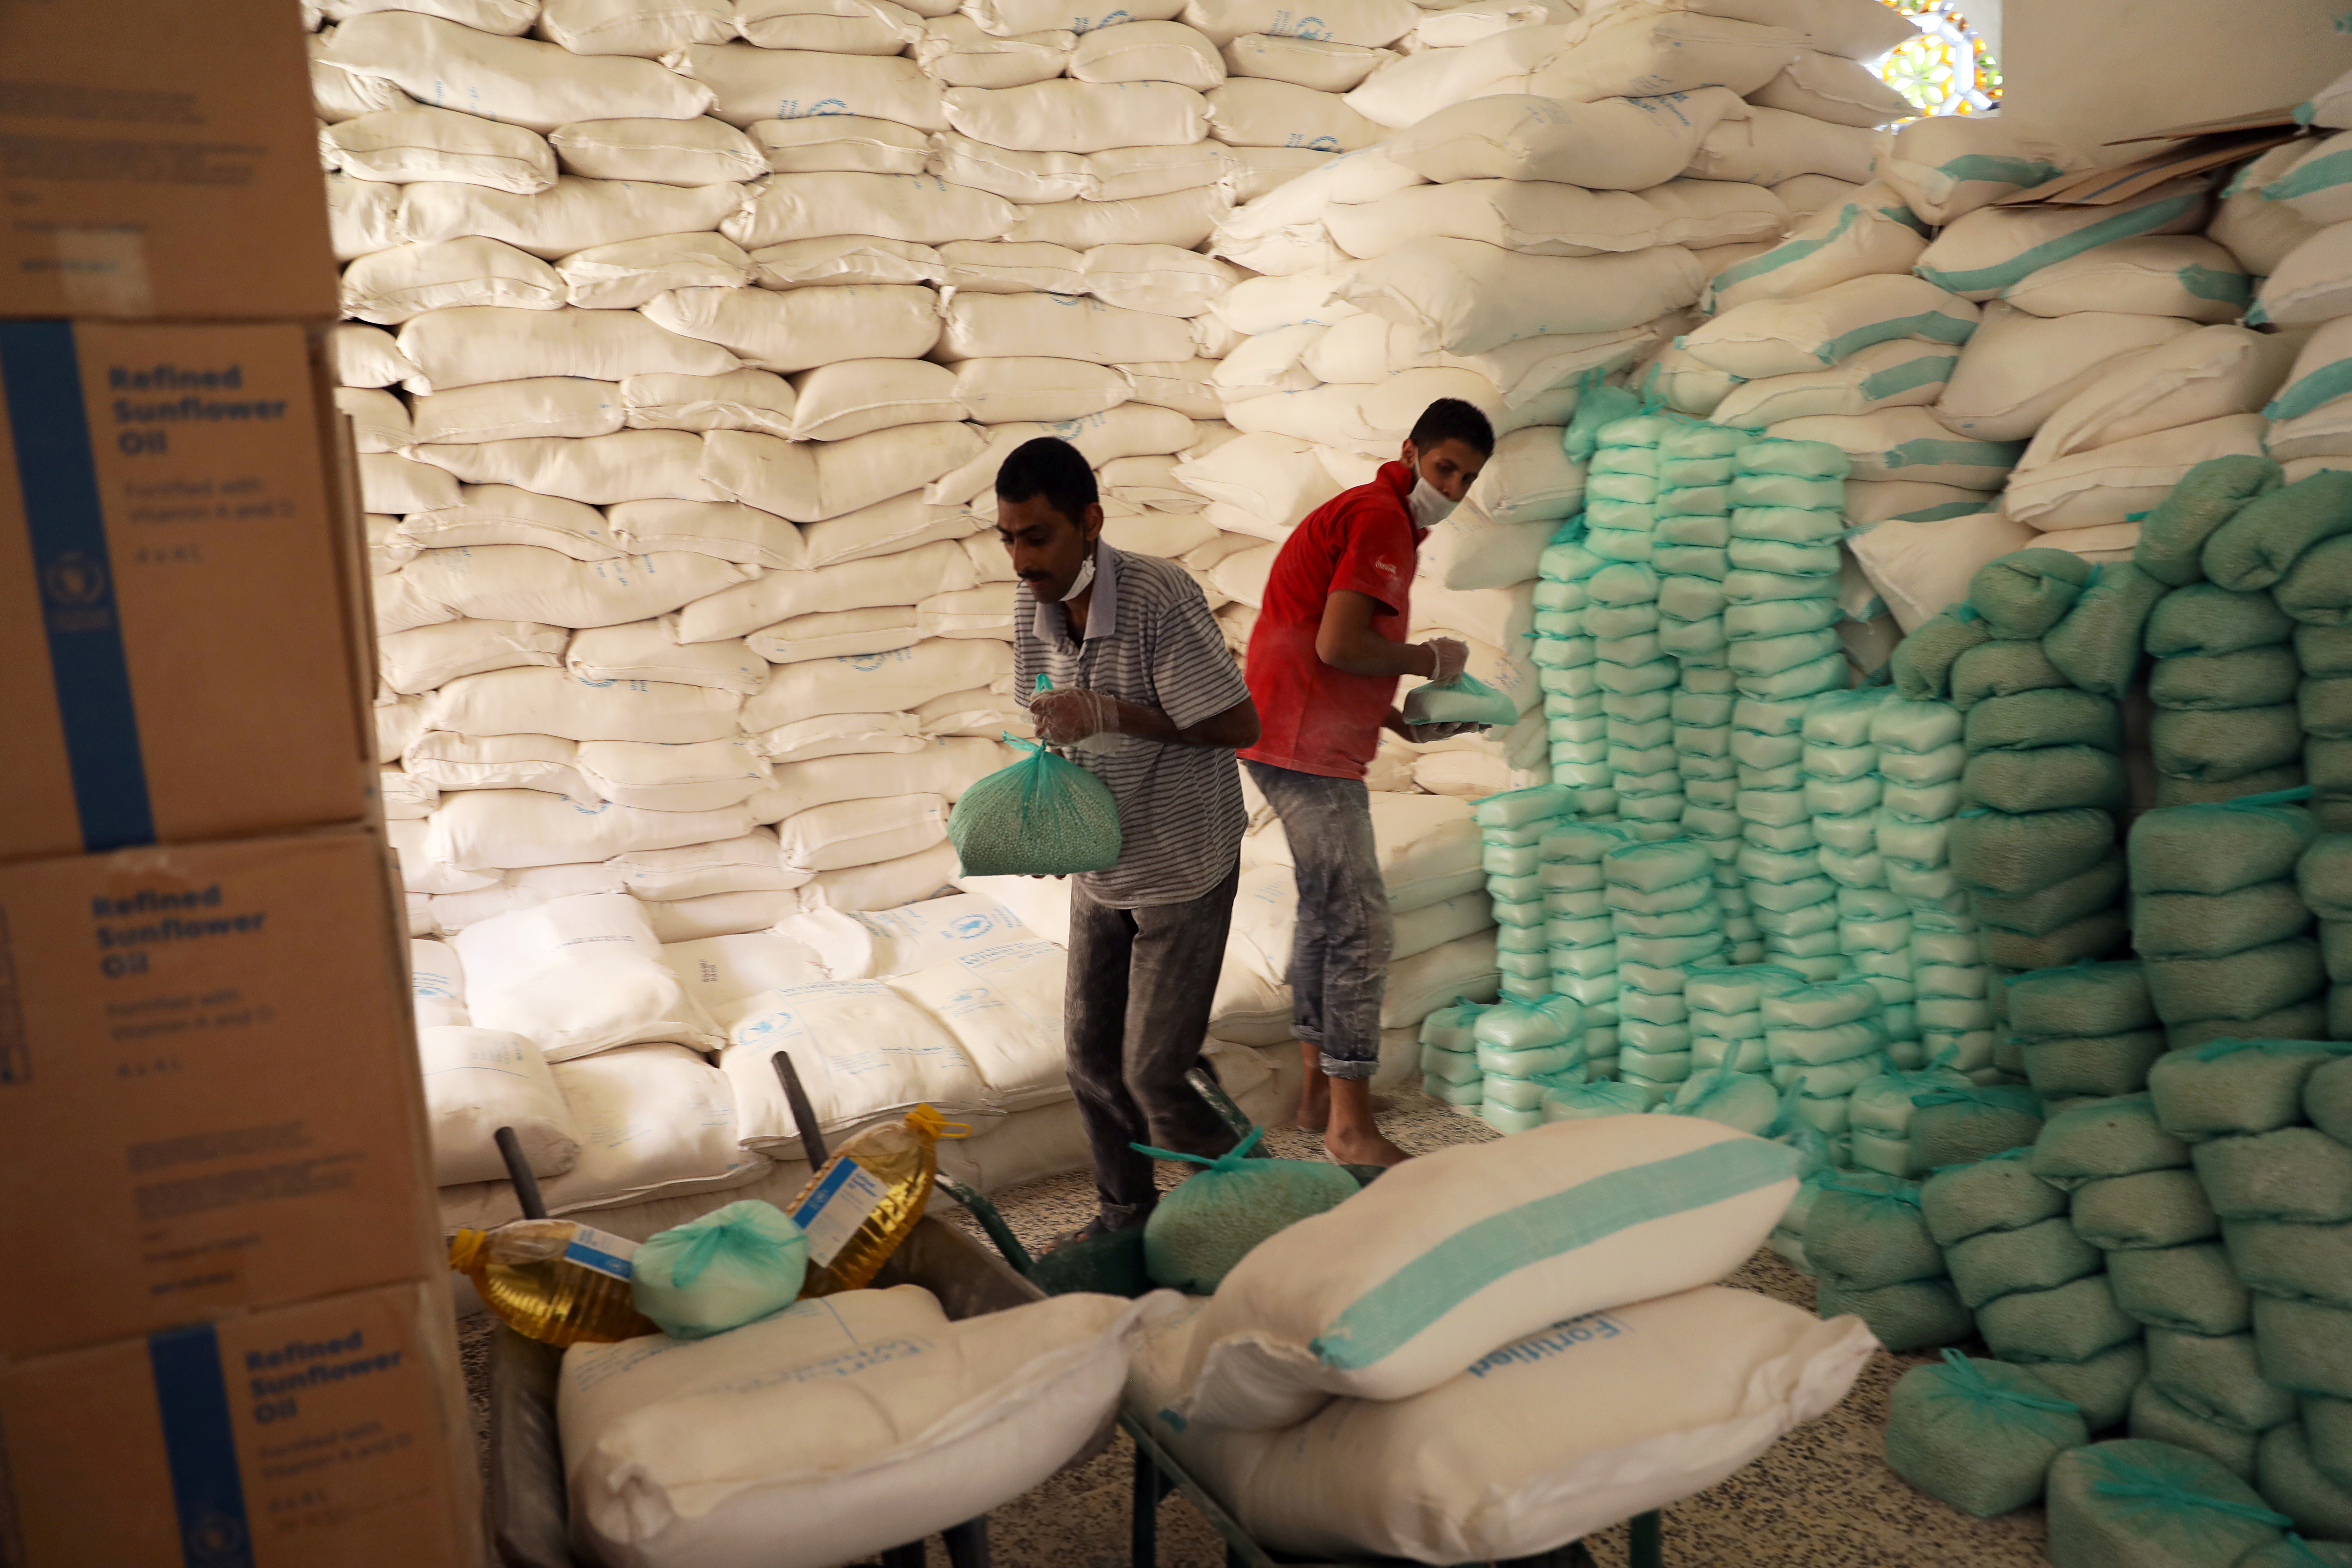 Workers prepare foodstuff for beneficiaries at a food distribution center supported by the World Food Program in Sanaa, Yemen June 3, 2020. REUTERS/Khaled Abdullah/File Photo